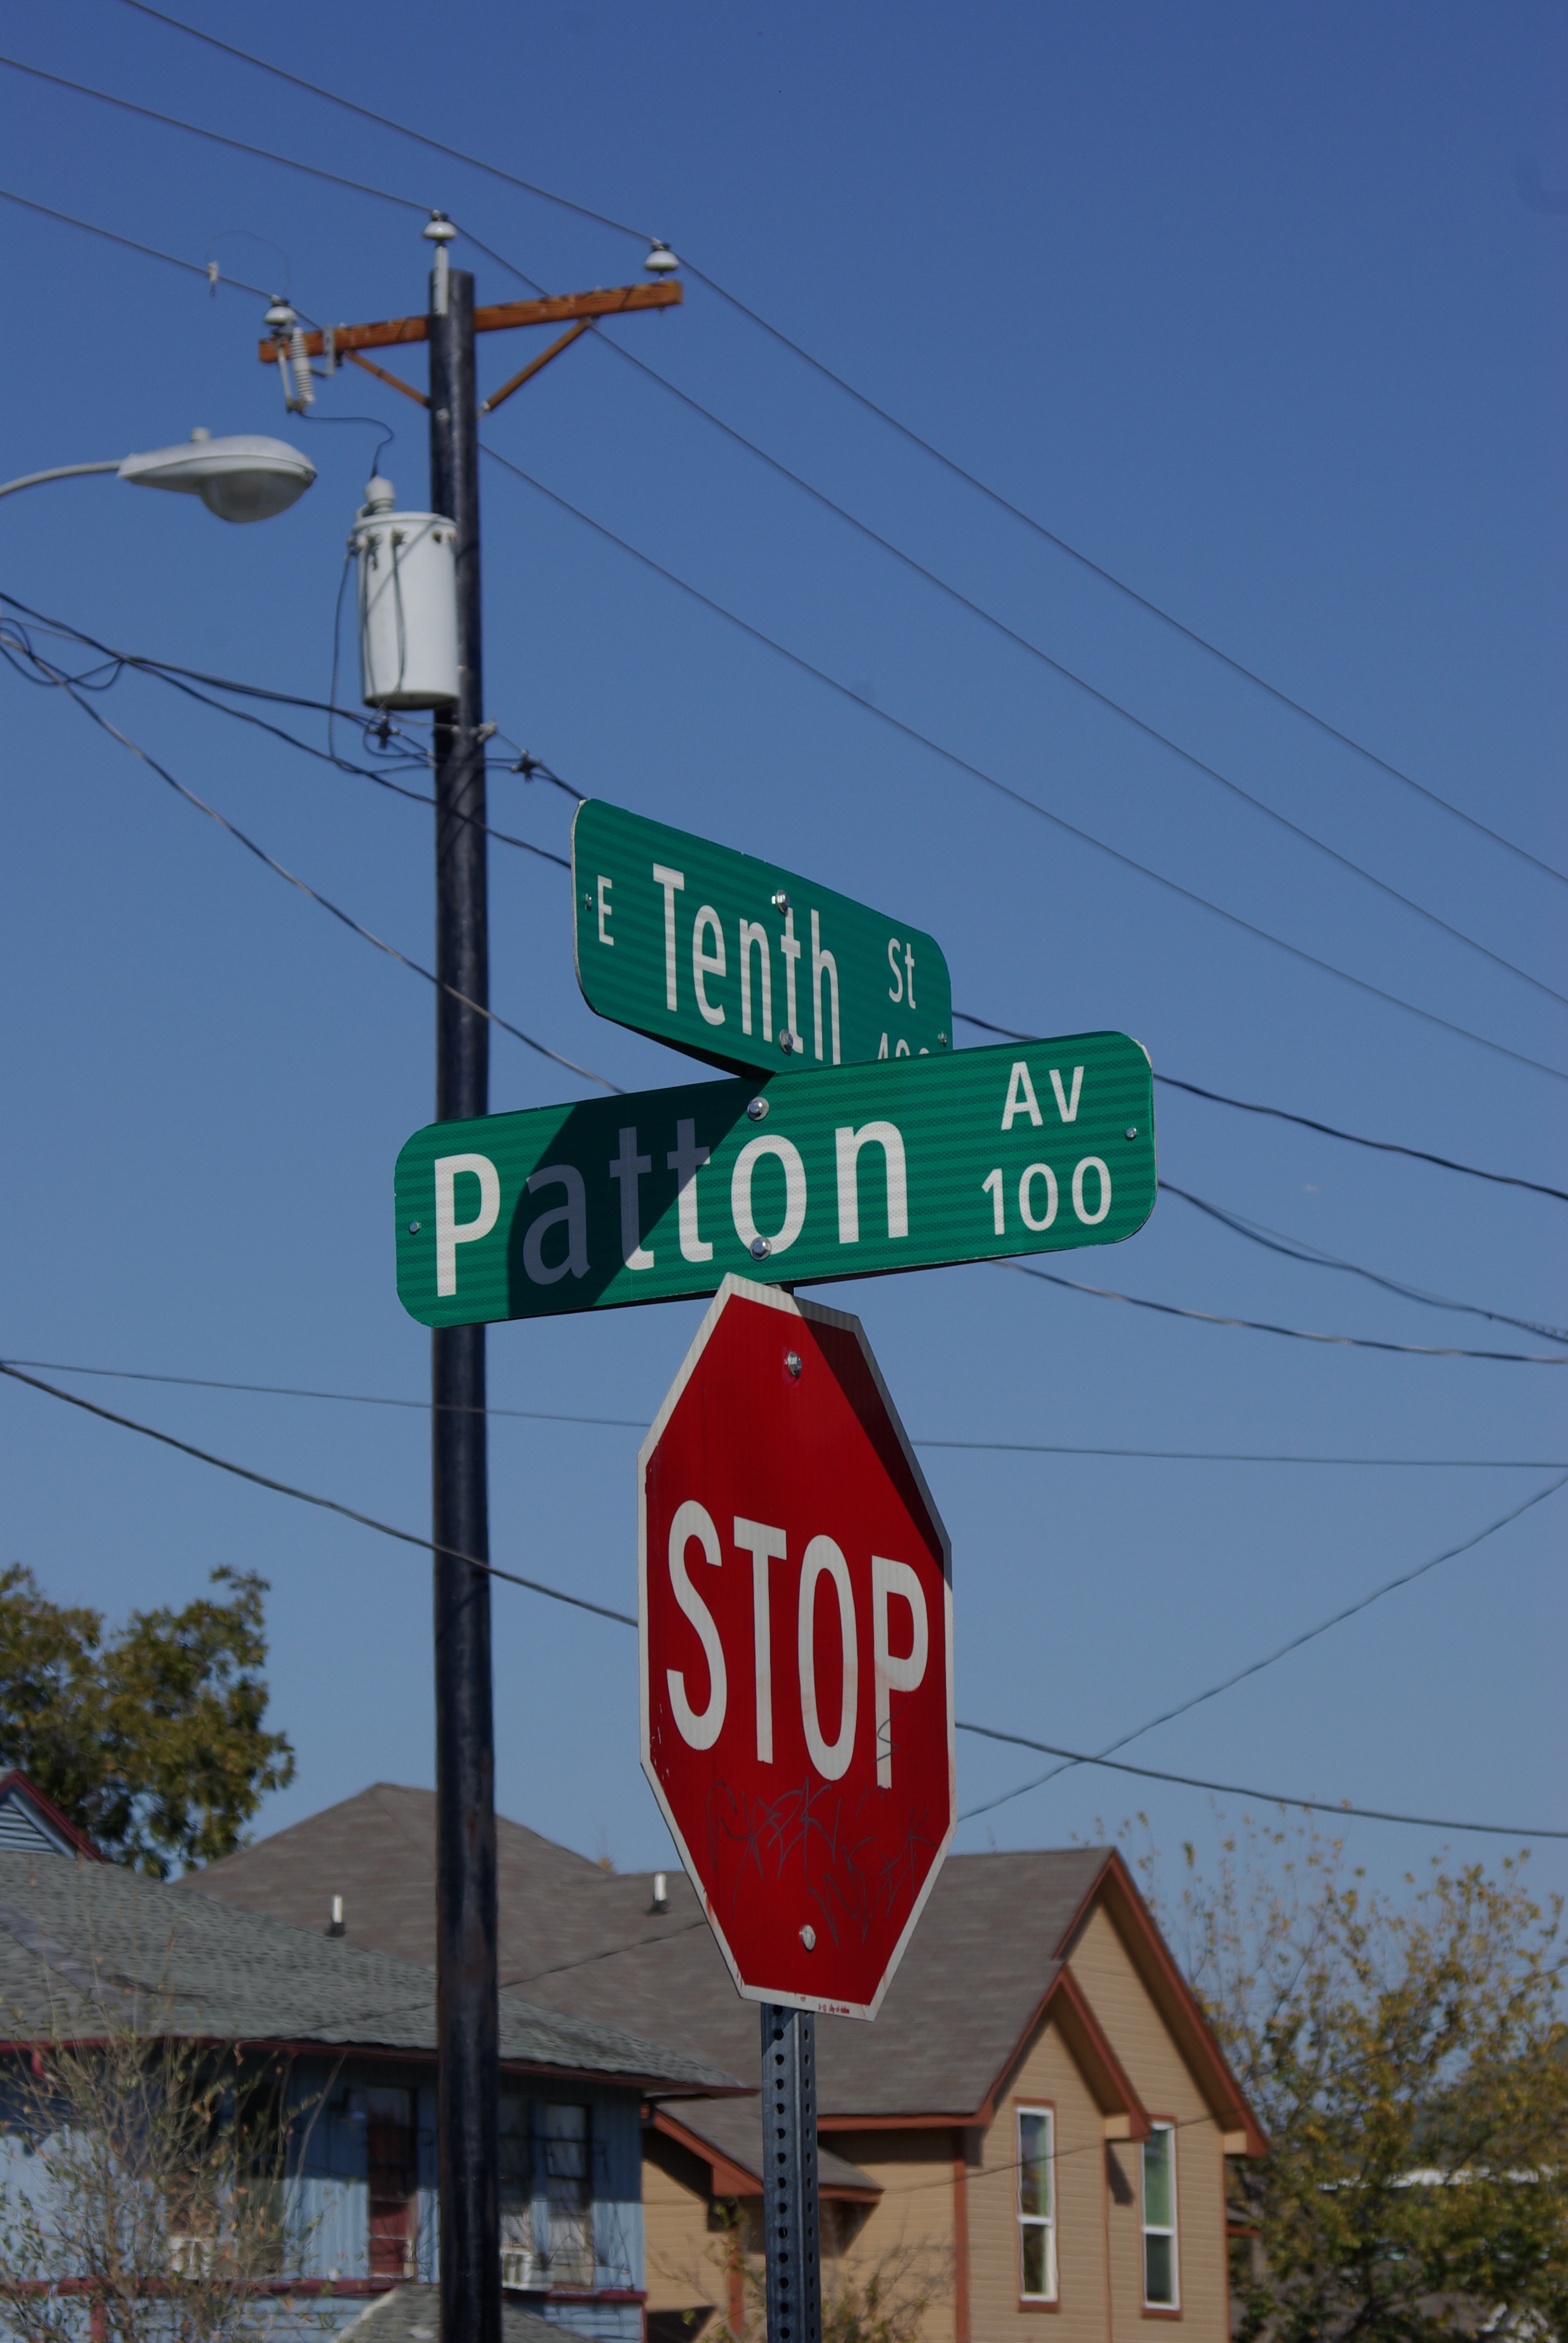 2012-11-20 Home and Tippitt Memorial 036 Street sign at 10th and Patton, site of confrontation between Lee Oswald and Officer Tippit - photo by Ed Darrell